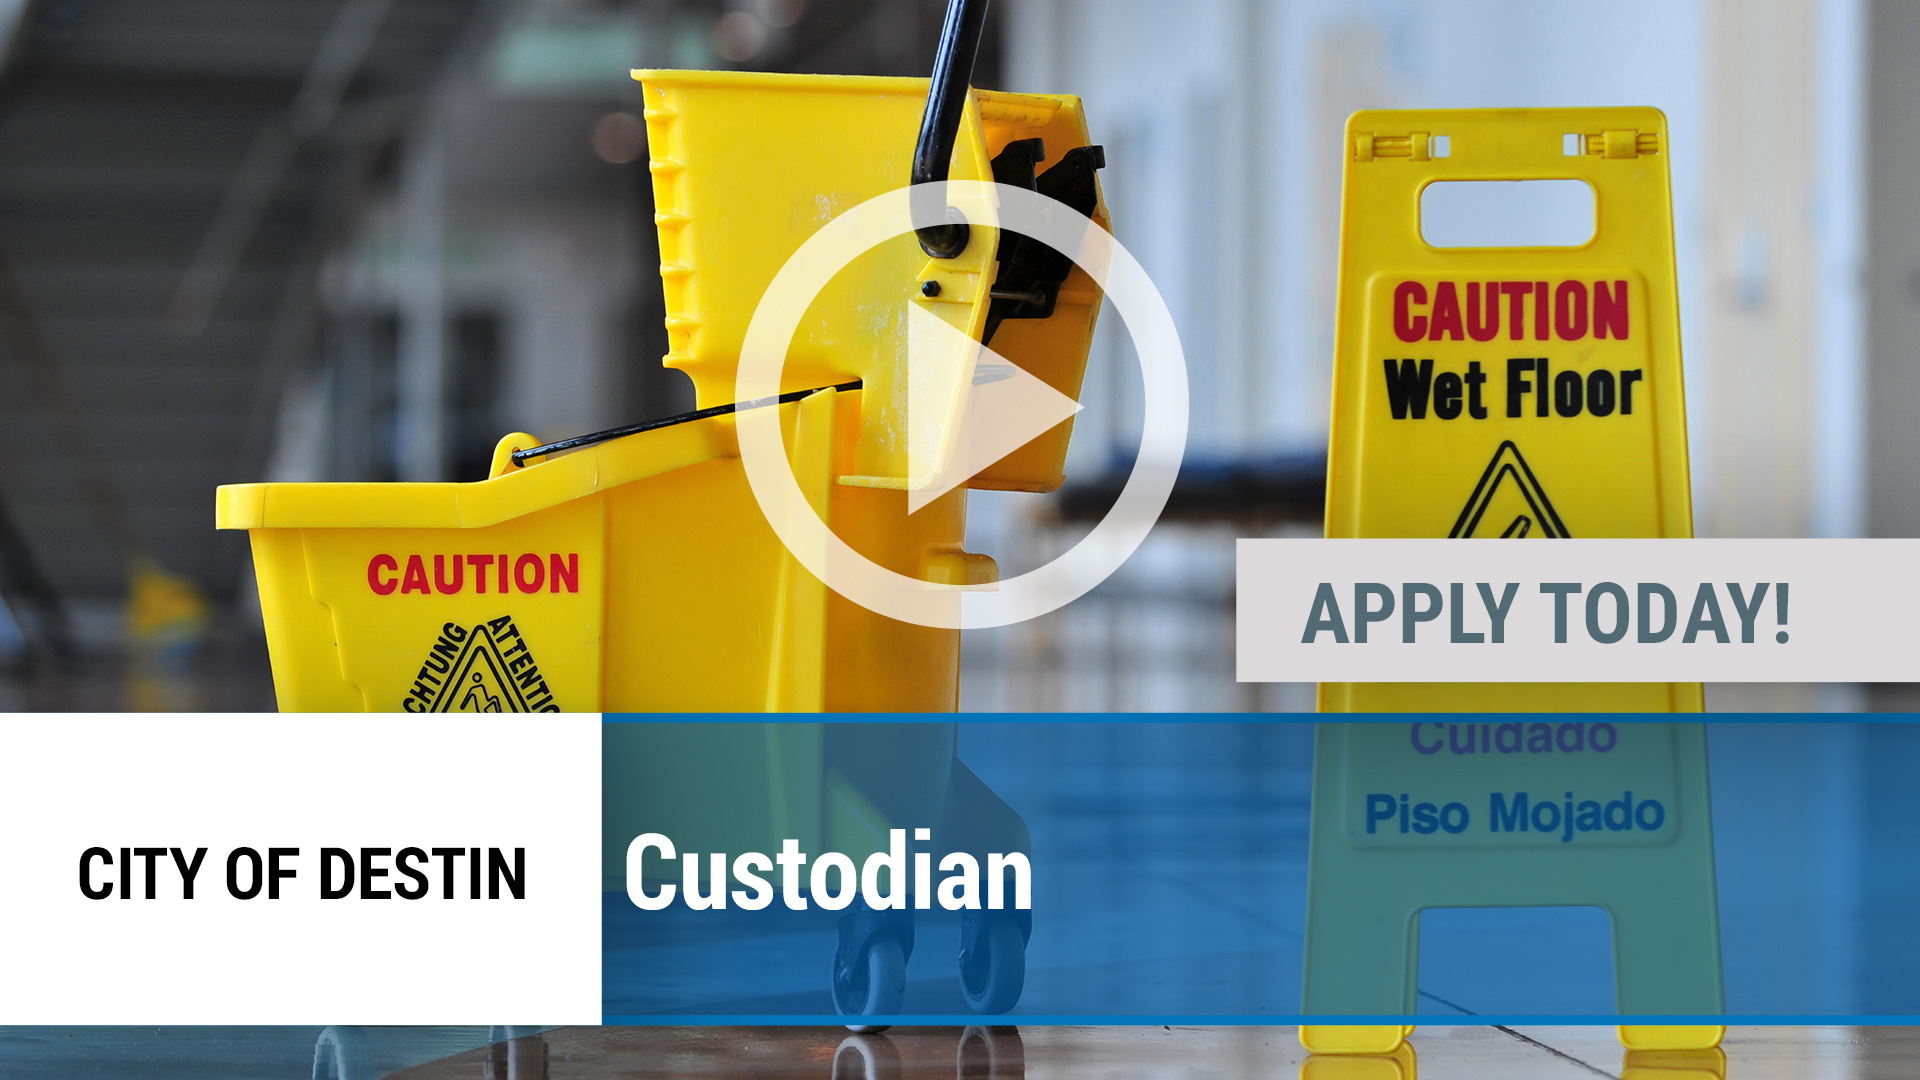 Watch our careers video for available job opening Custodian in Destin, FL